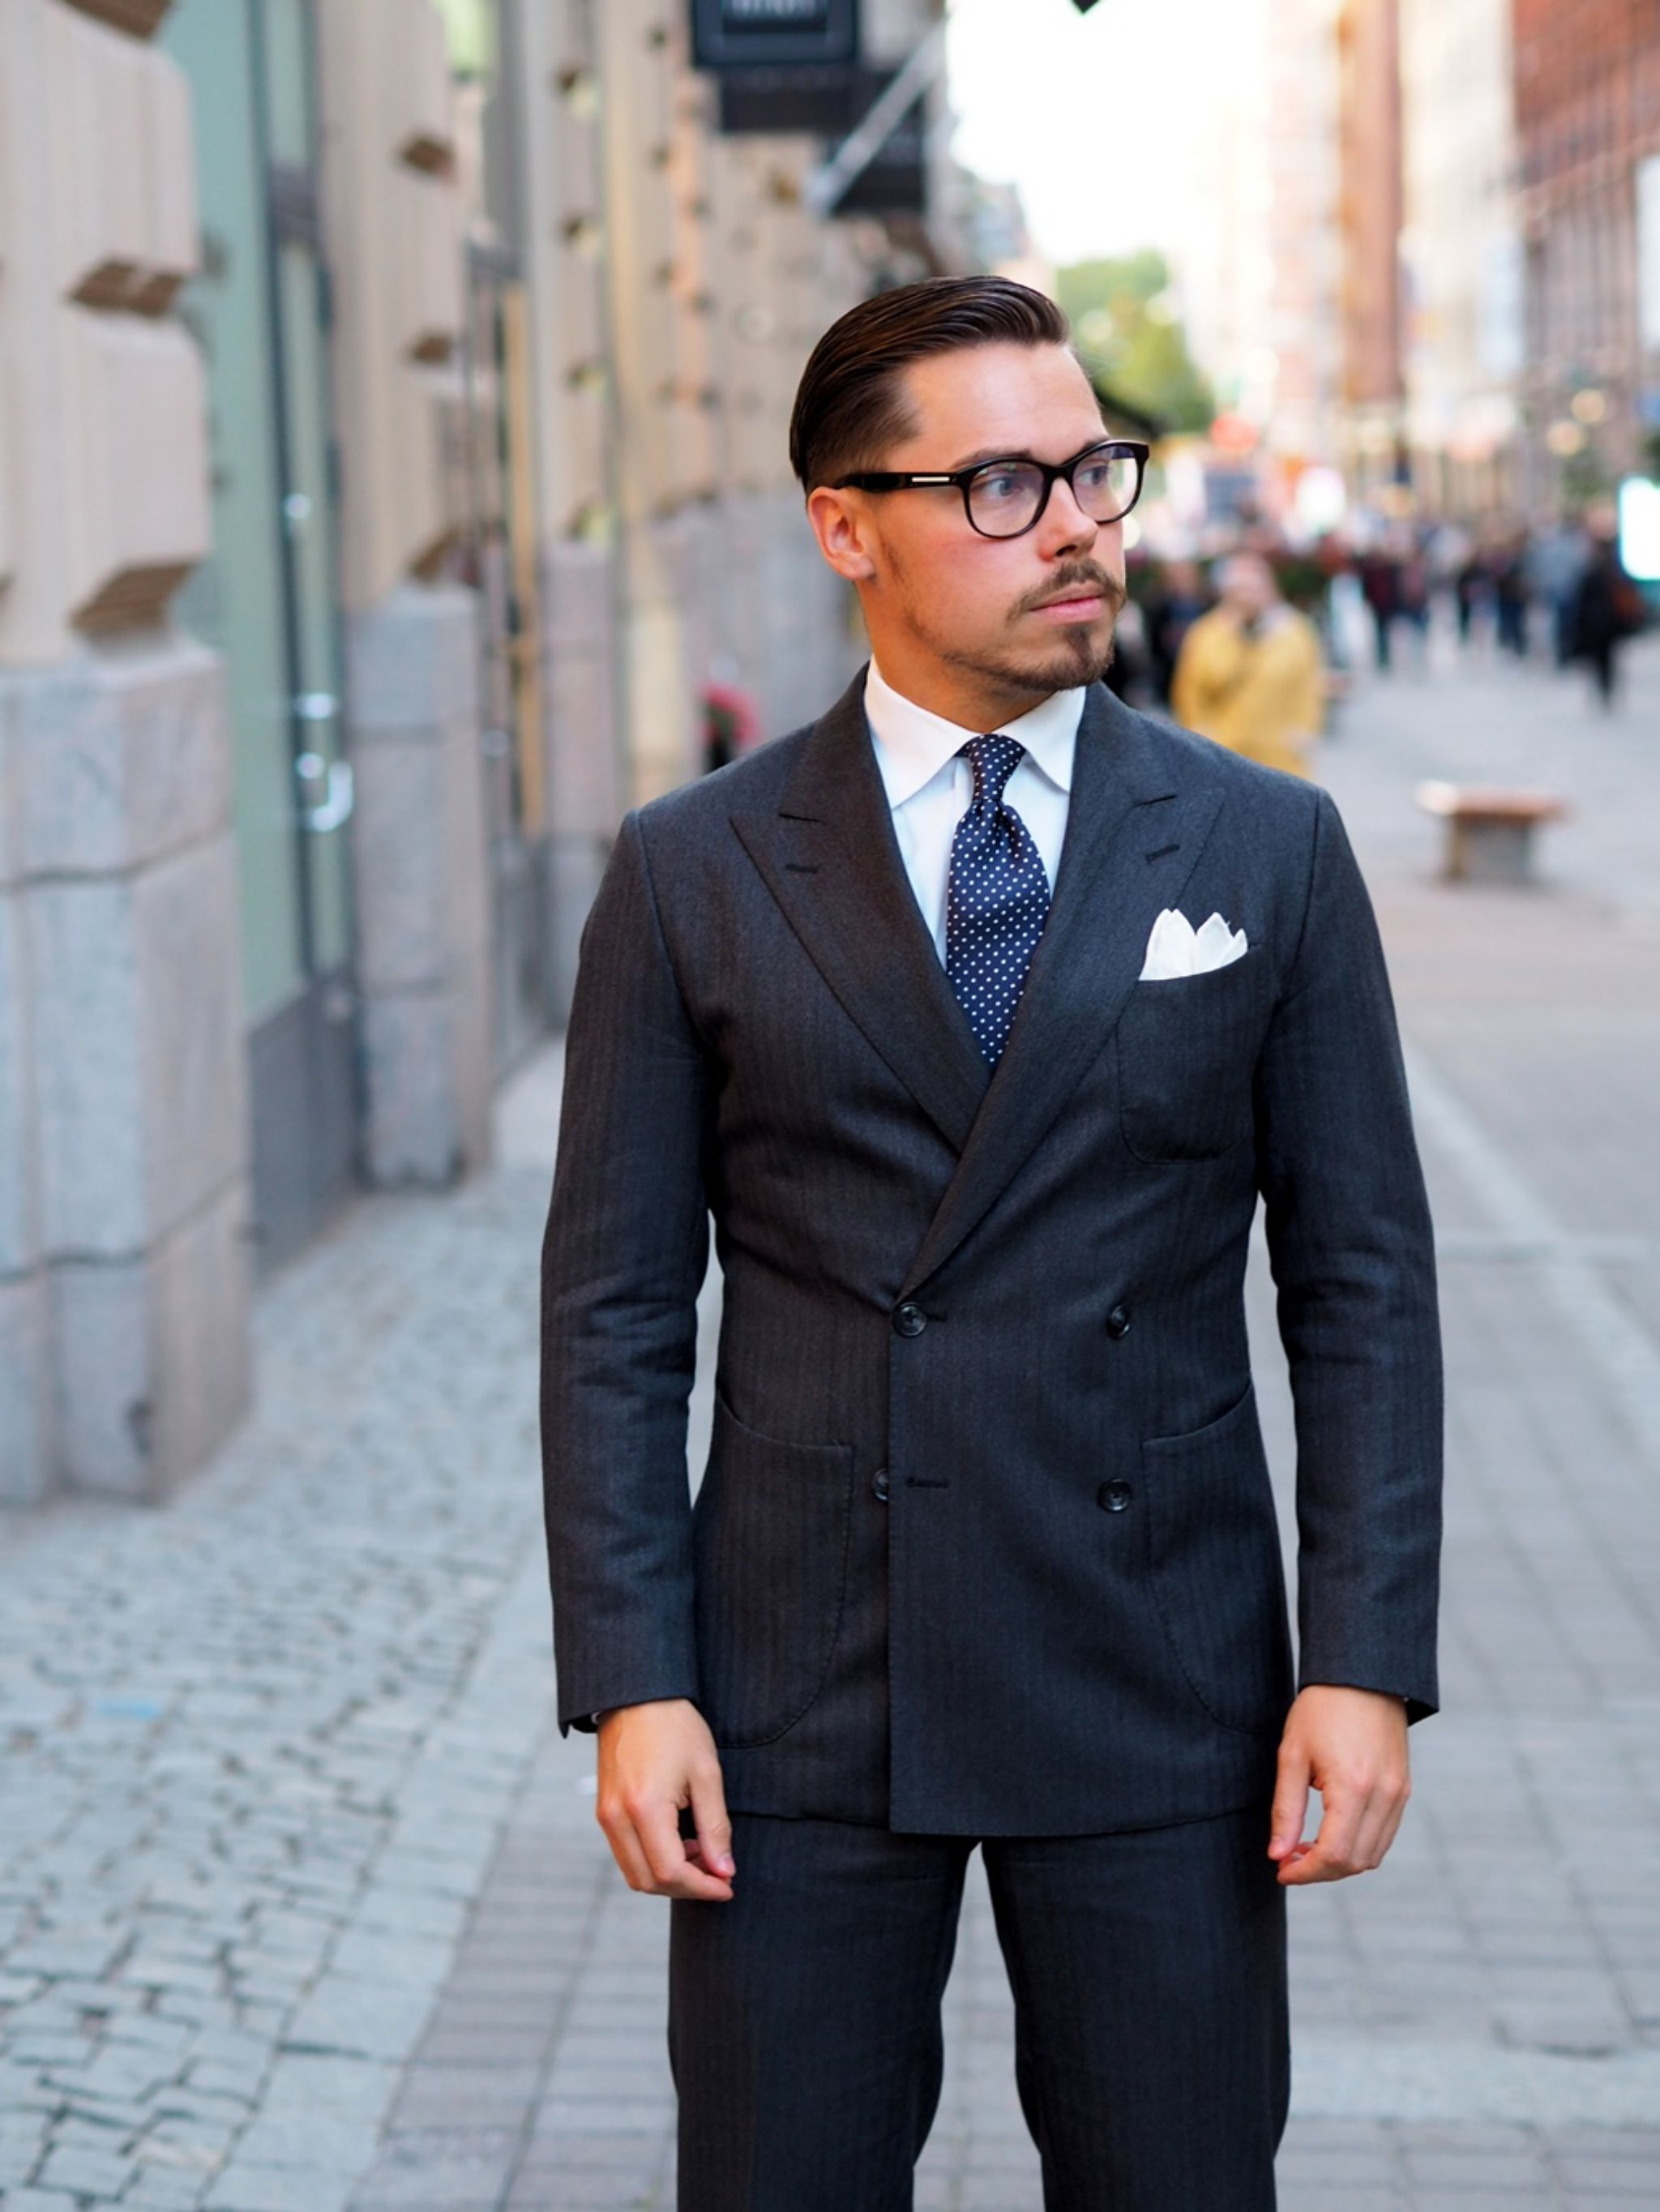 The blue pin dot tie with gray double-breasted suit - ready for a party